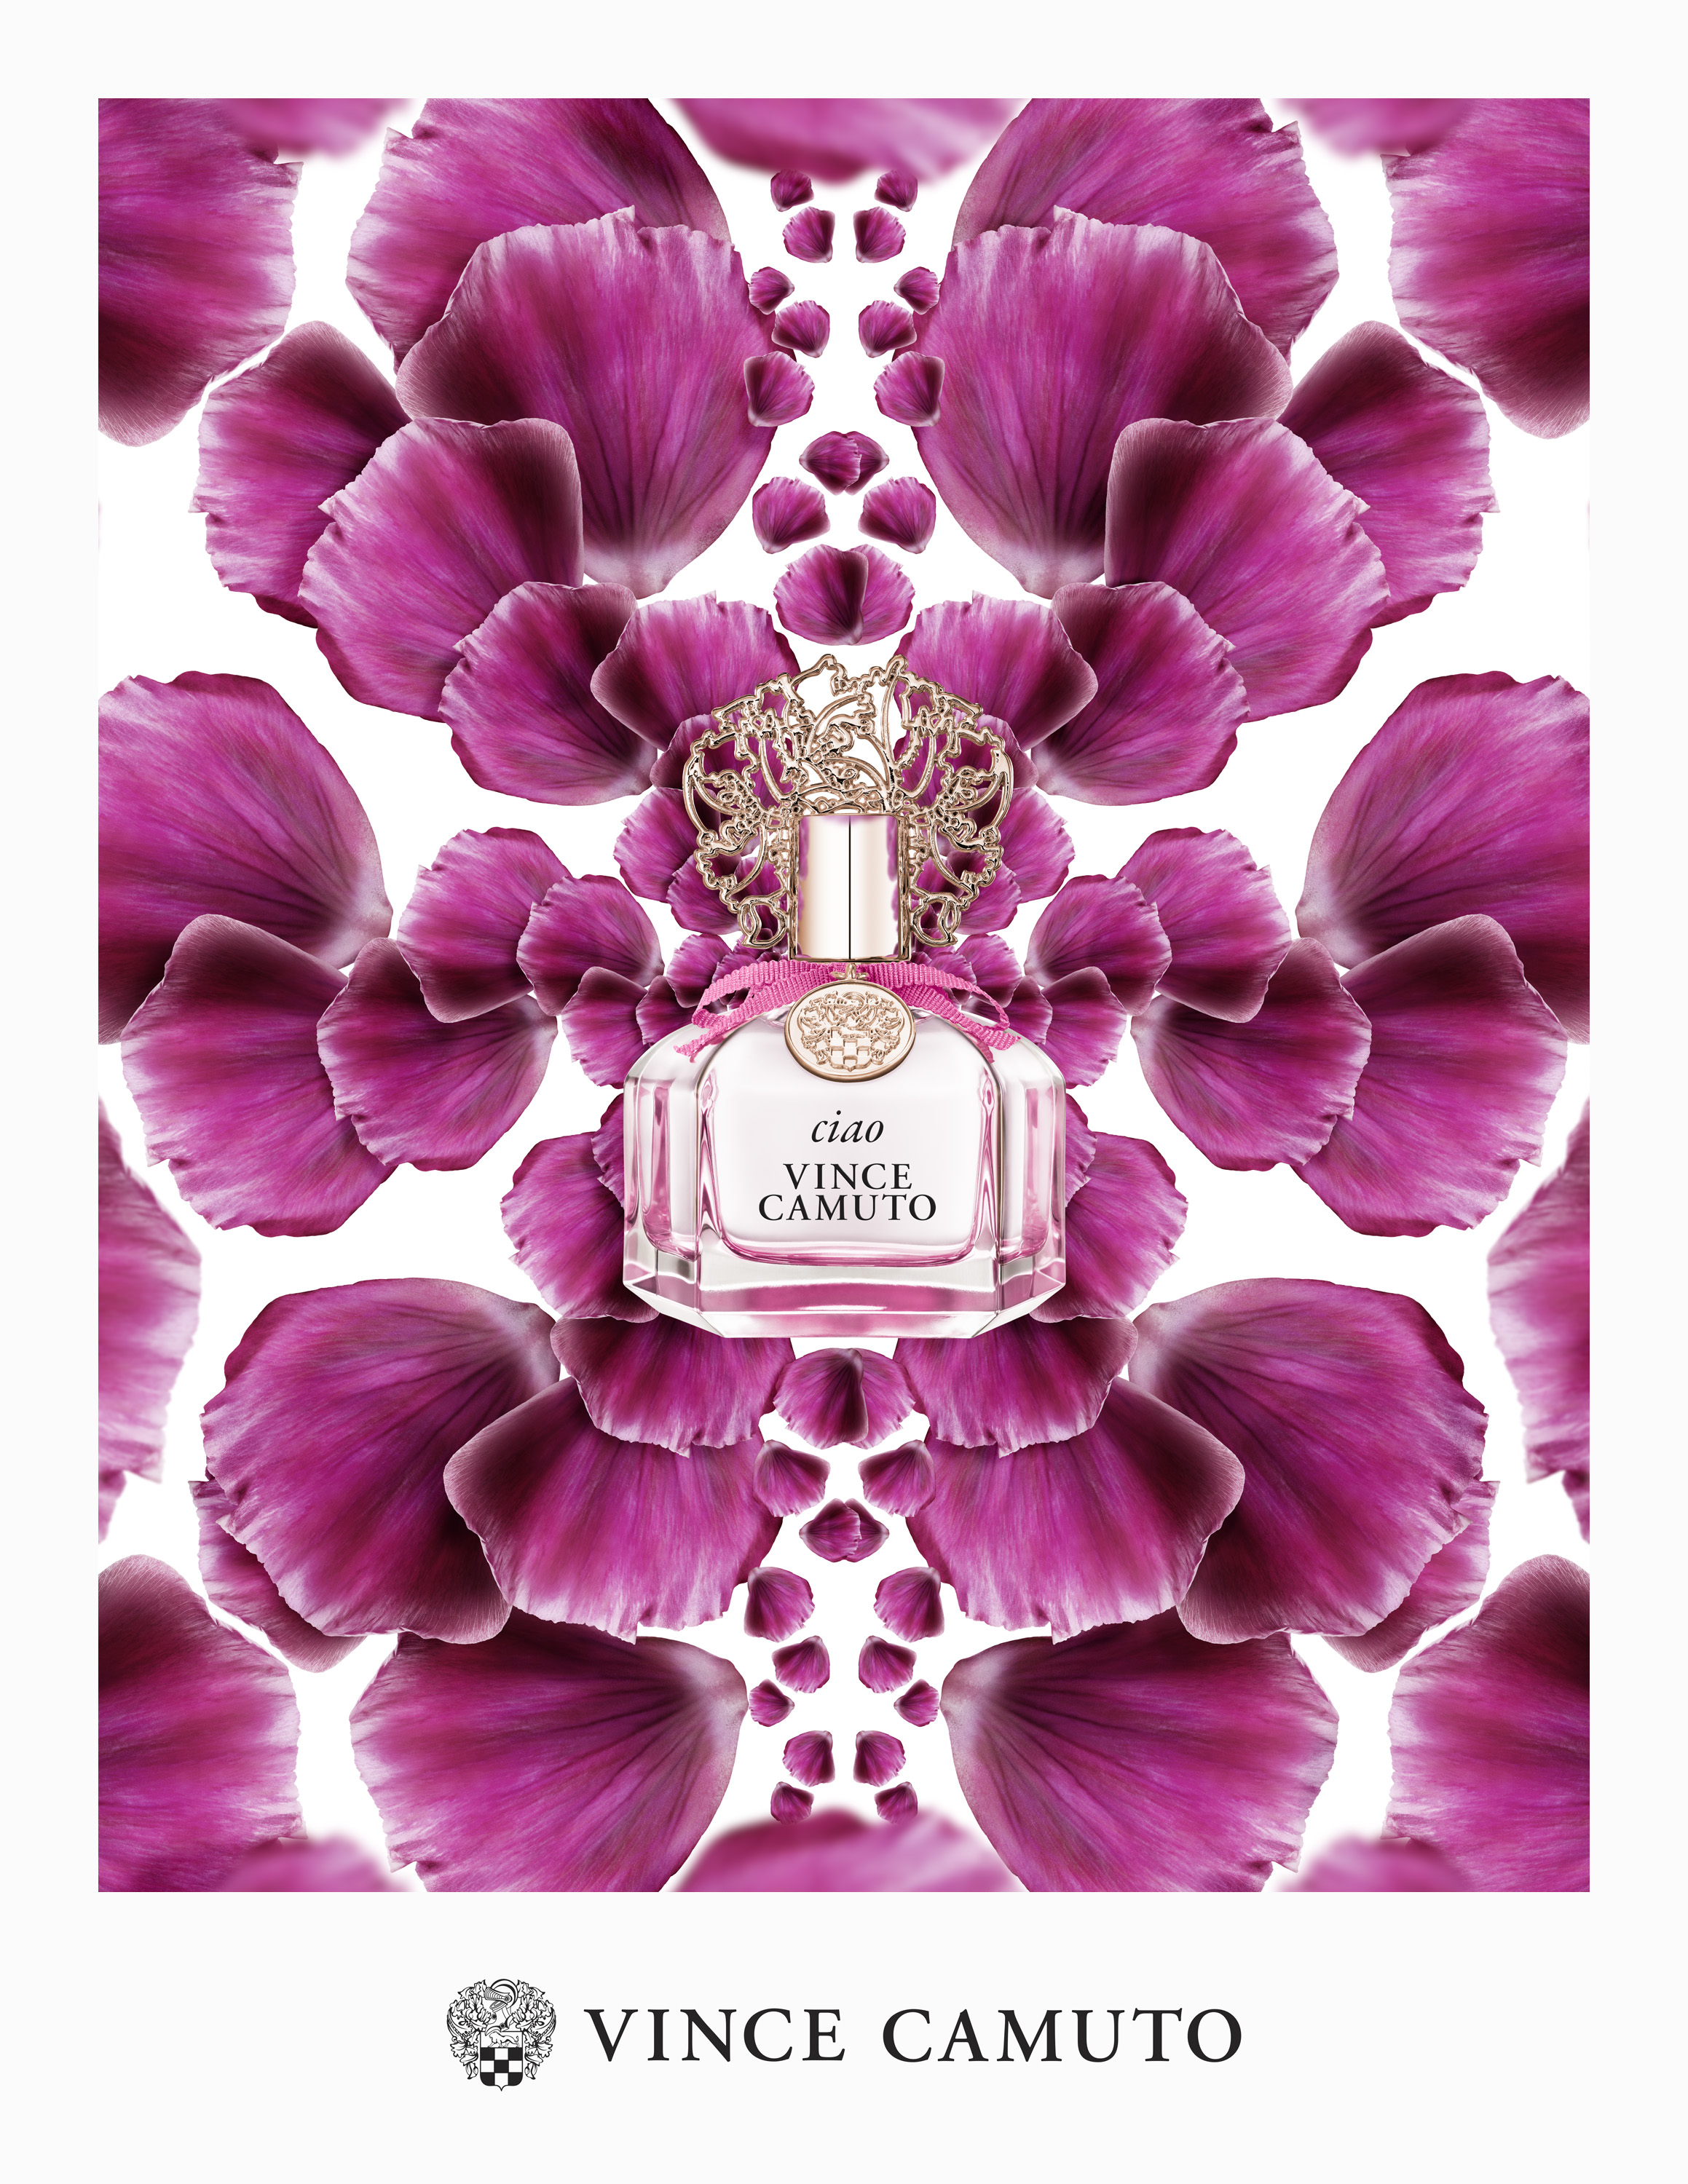 Vince-Camuto-Amore-Fragrance-Ad-by-Timothy-Hogan_CIAO.jpg